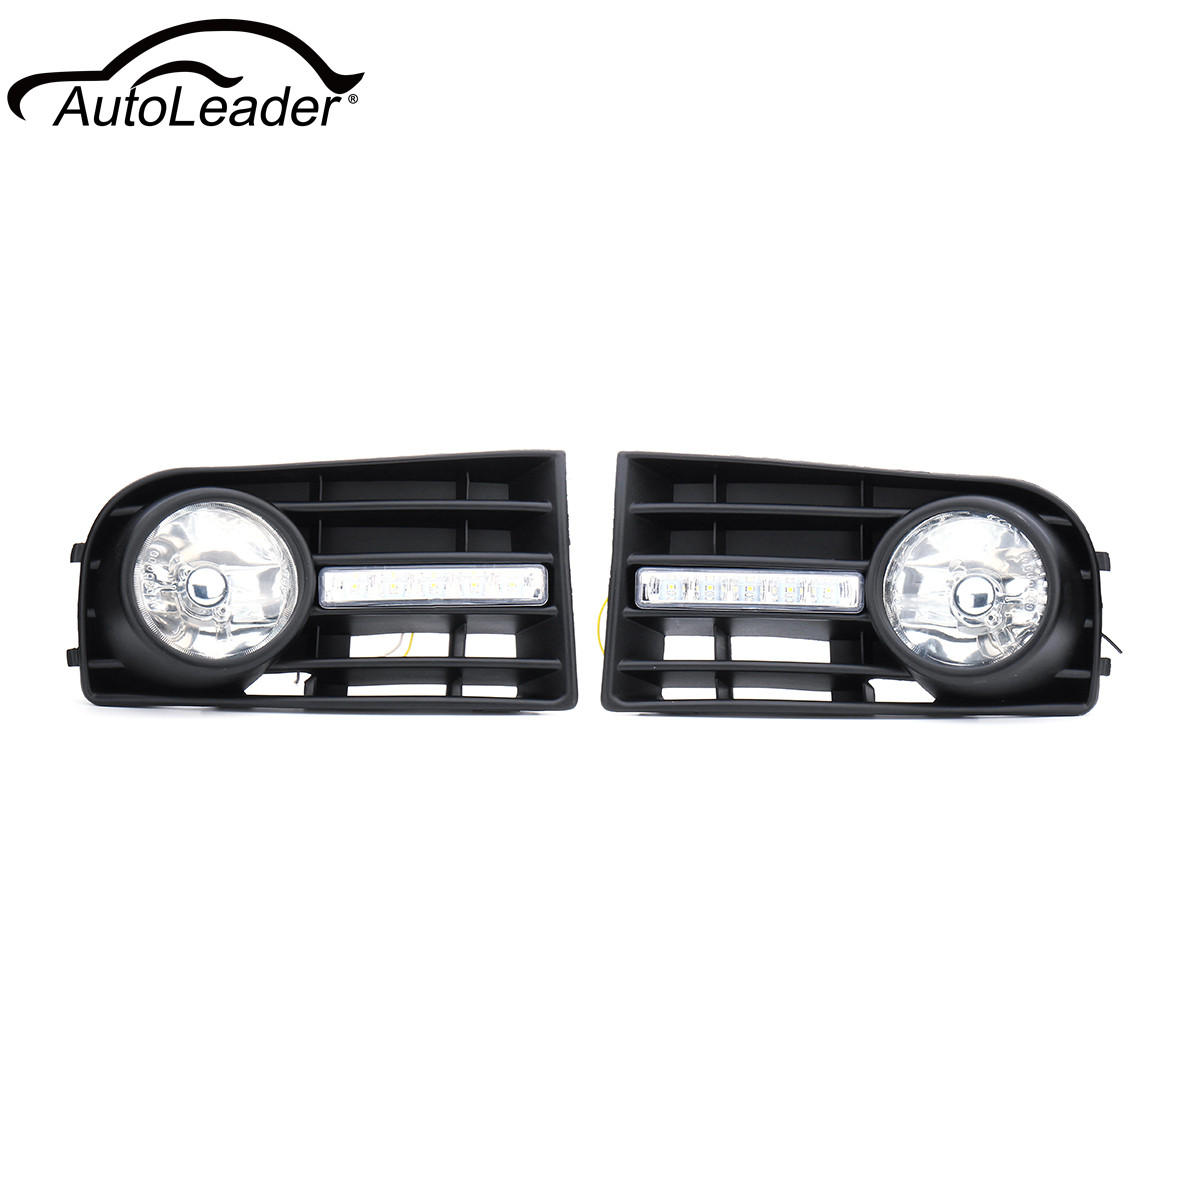 Pair Car Front DRL Fog Light Lamps Grilles + Wiring Harness Switch Fog Lamp For VW Golf 5 2006-2009 Yellow Light afanti music diy sg alder body electric guitar body ajb 157